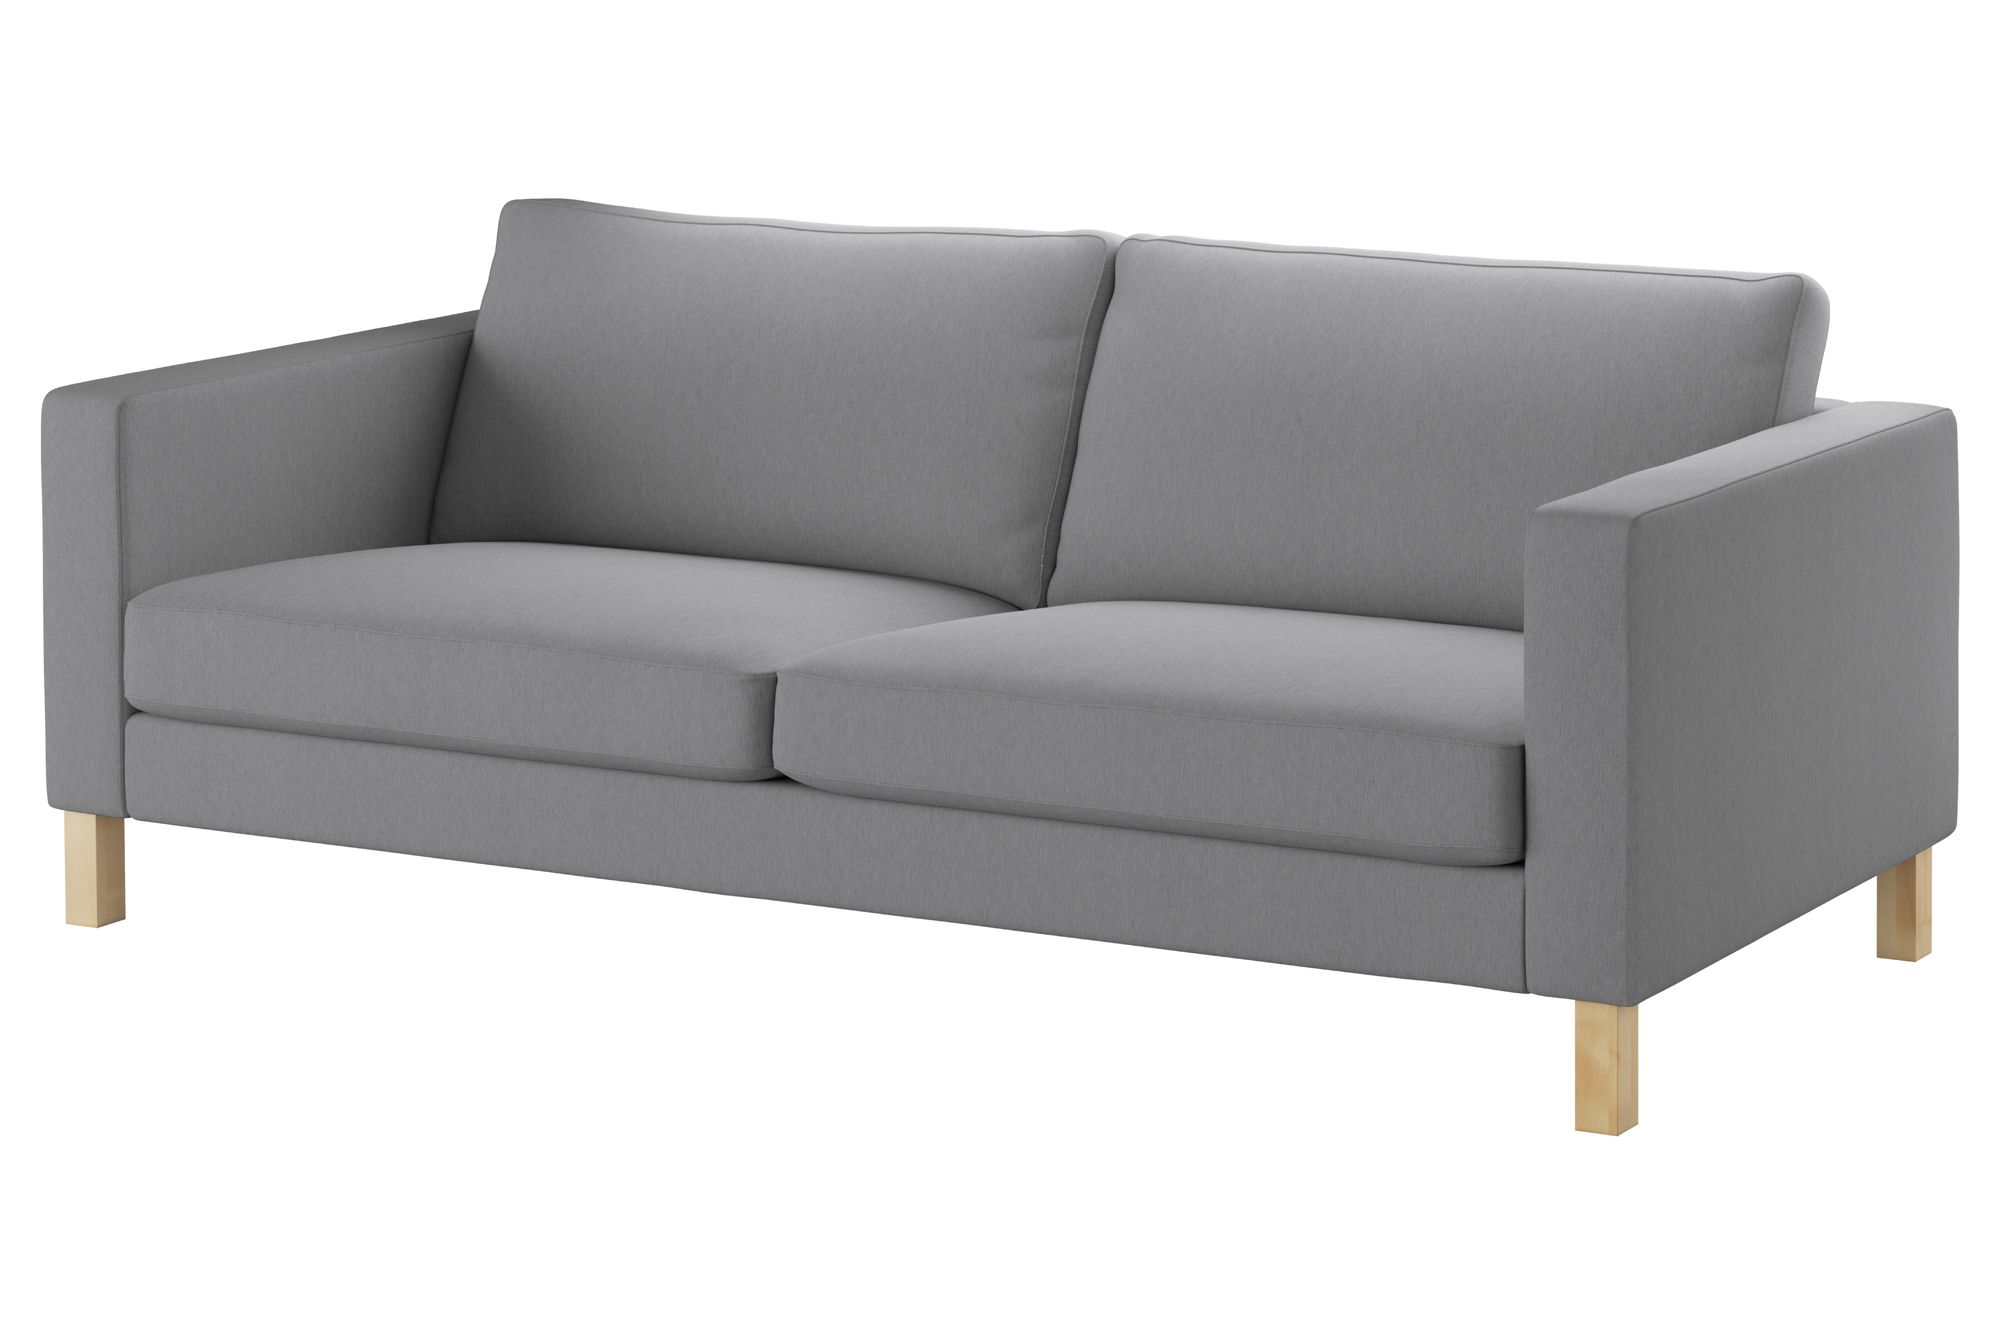 Most Comfortable Pull Out Couch Canada